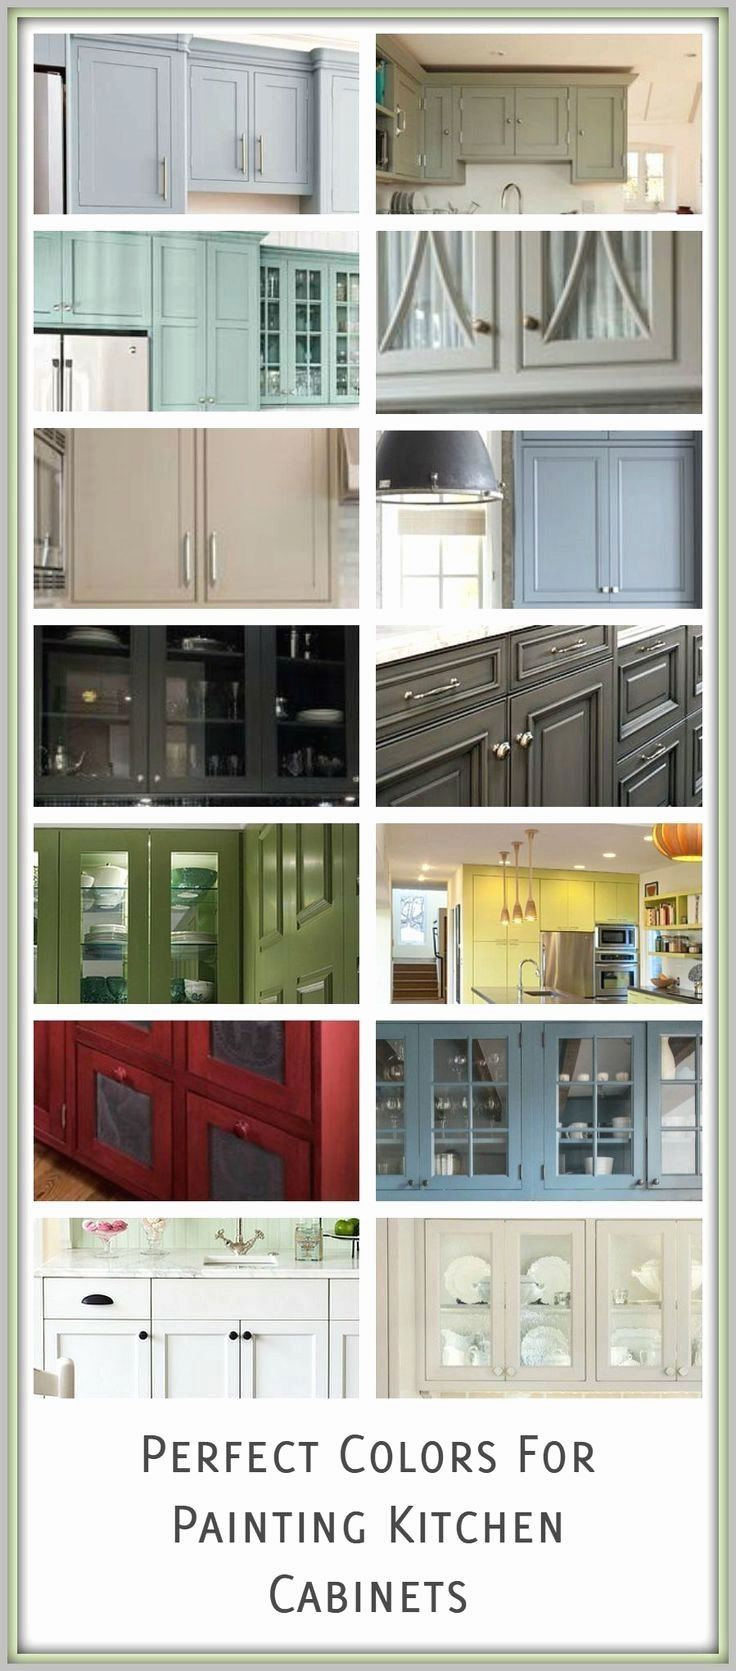 Kitchen Cabinet Ideas Paint And Pics Of Costco Kitchen Cabinet Hardware Cabinets Kitchendesi Painting Kitchen Cabinets Kitchen Cabinet Colors Kitchen Design